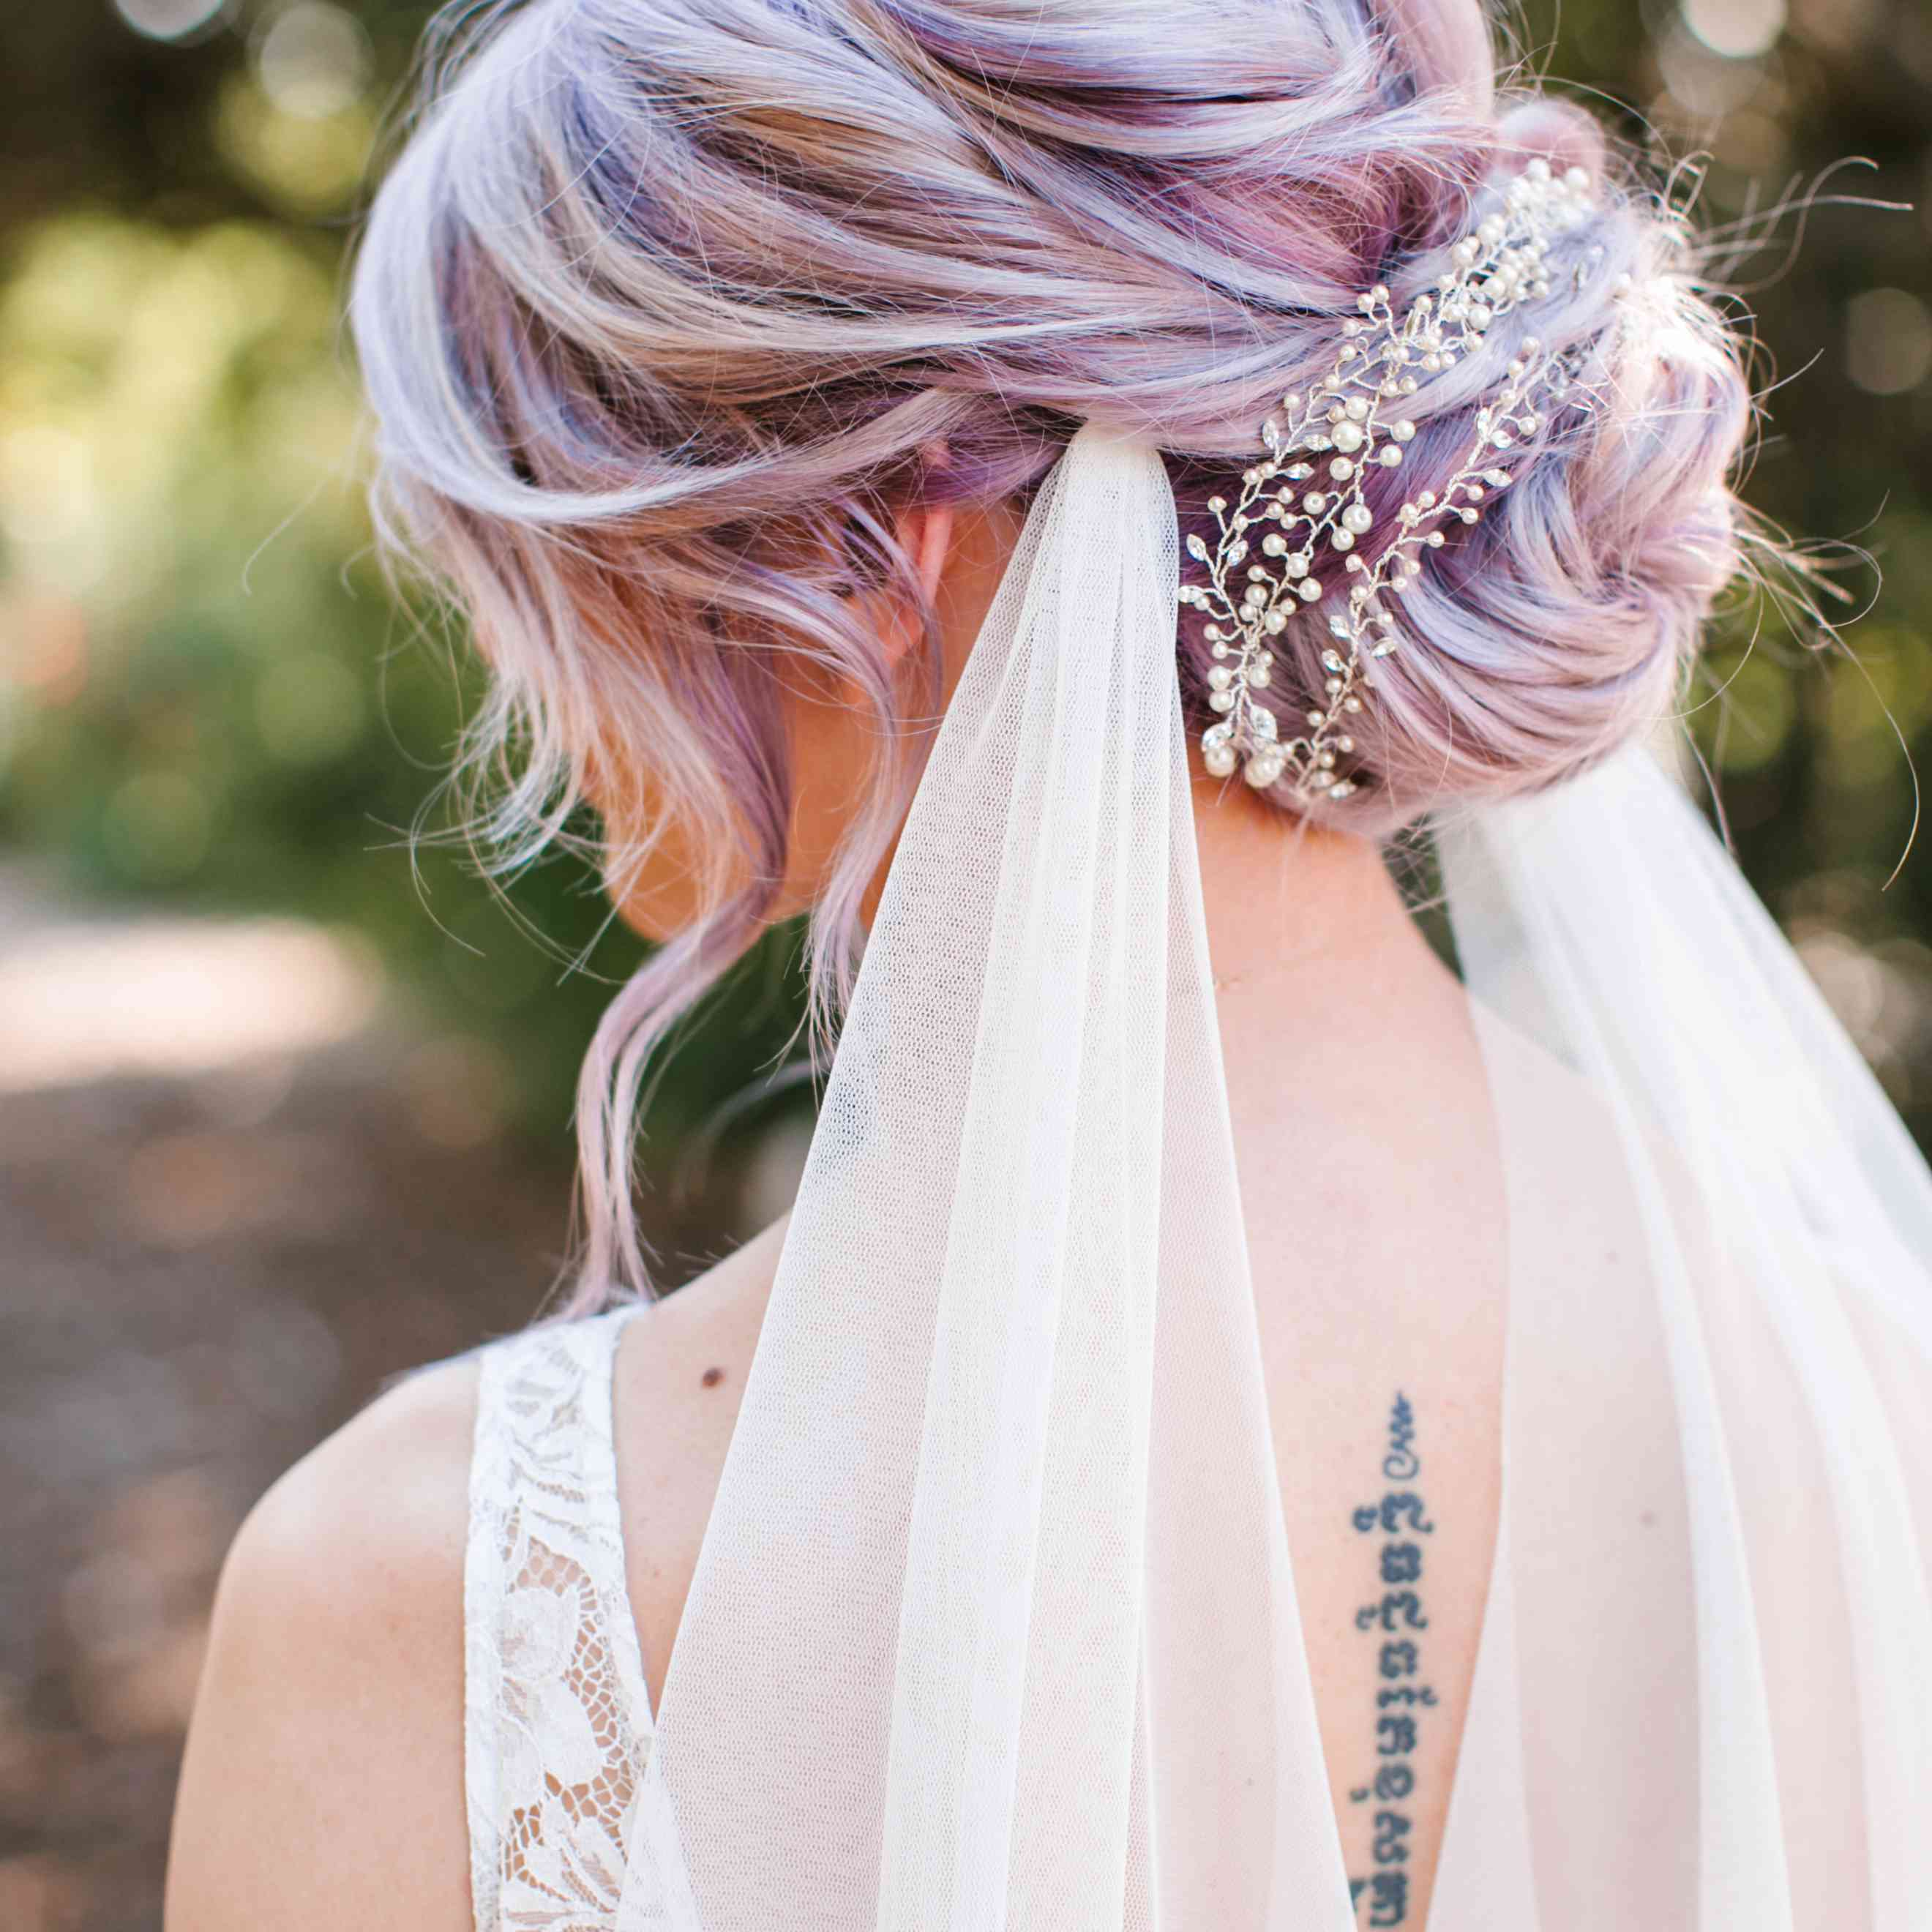 Close up of bride with lavender hair in bun with pearl pin